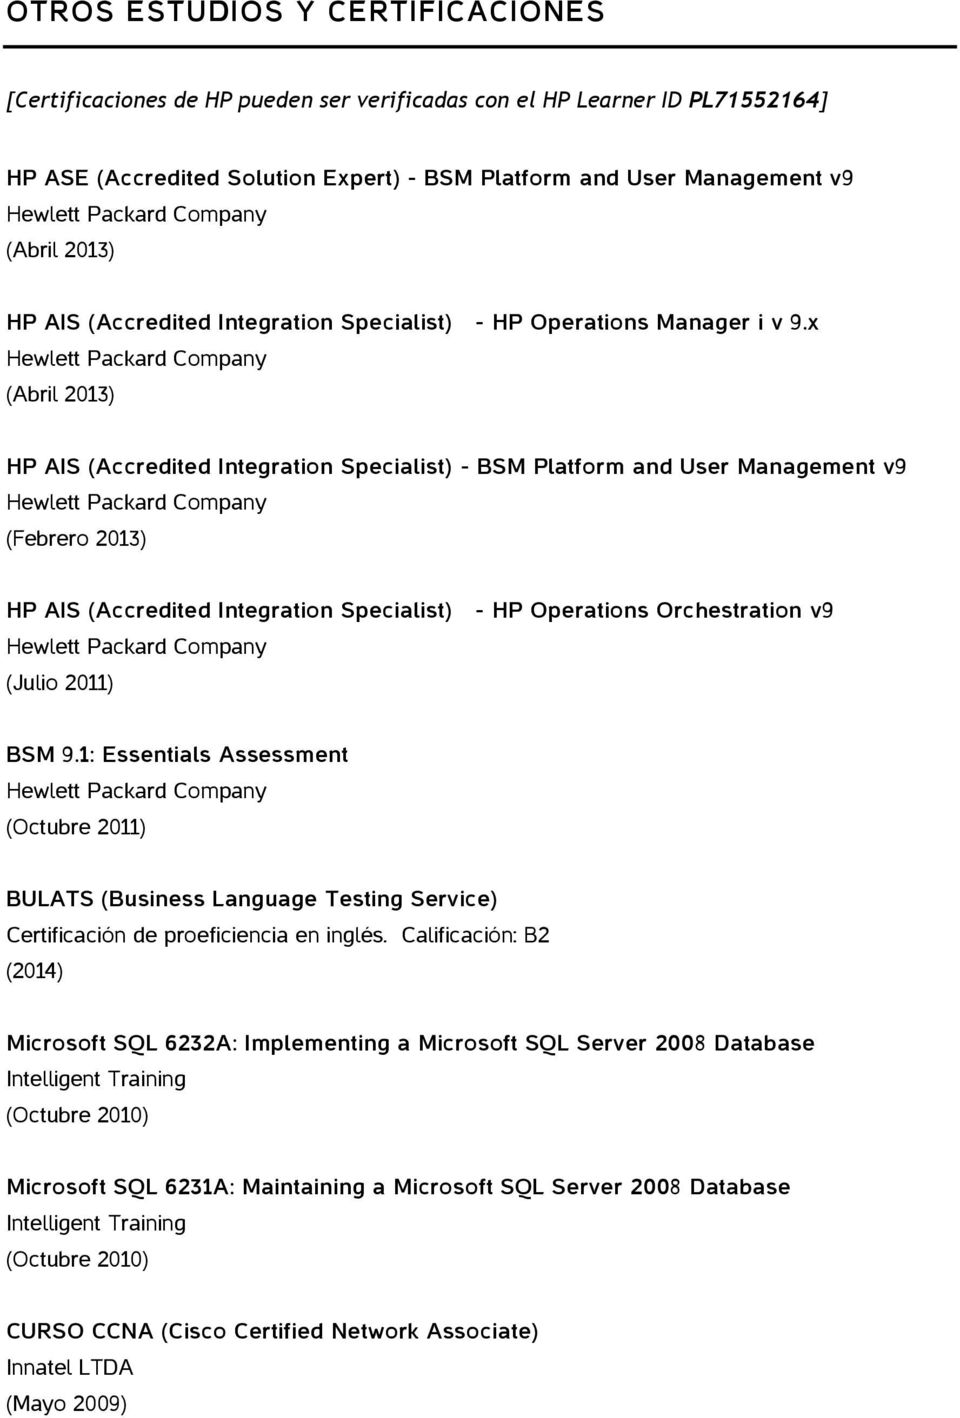 x (Abril 2013) HP AIS (Accredited Integration Specialist) - BSM Platform and User Management v9 (Febrero 2013) HP AIS (Accredited Integration Specialist) (Julio 2011) - HP Operations Orchestration v9